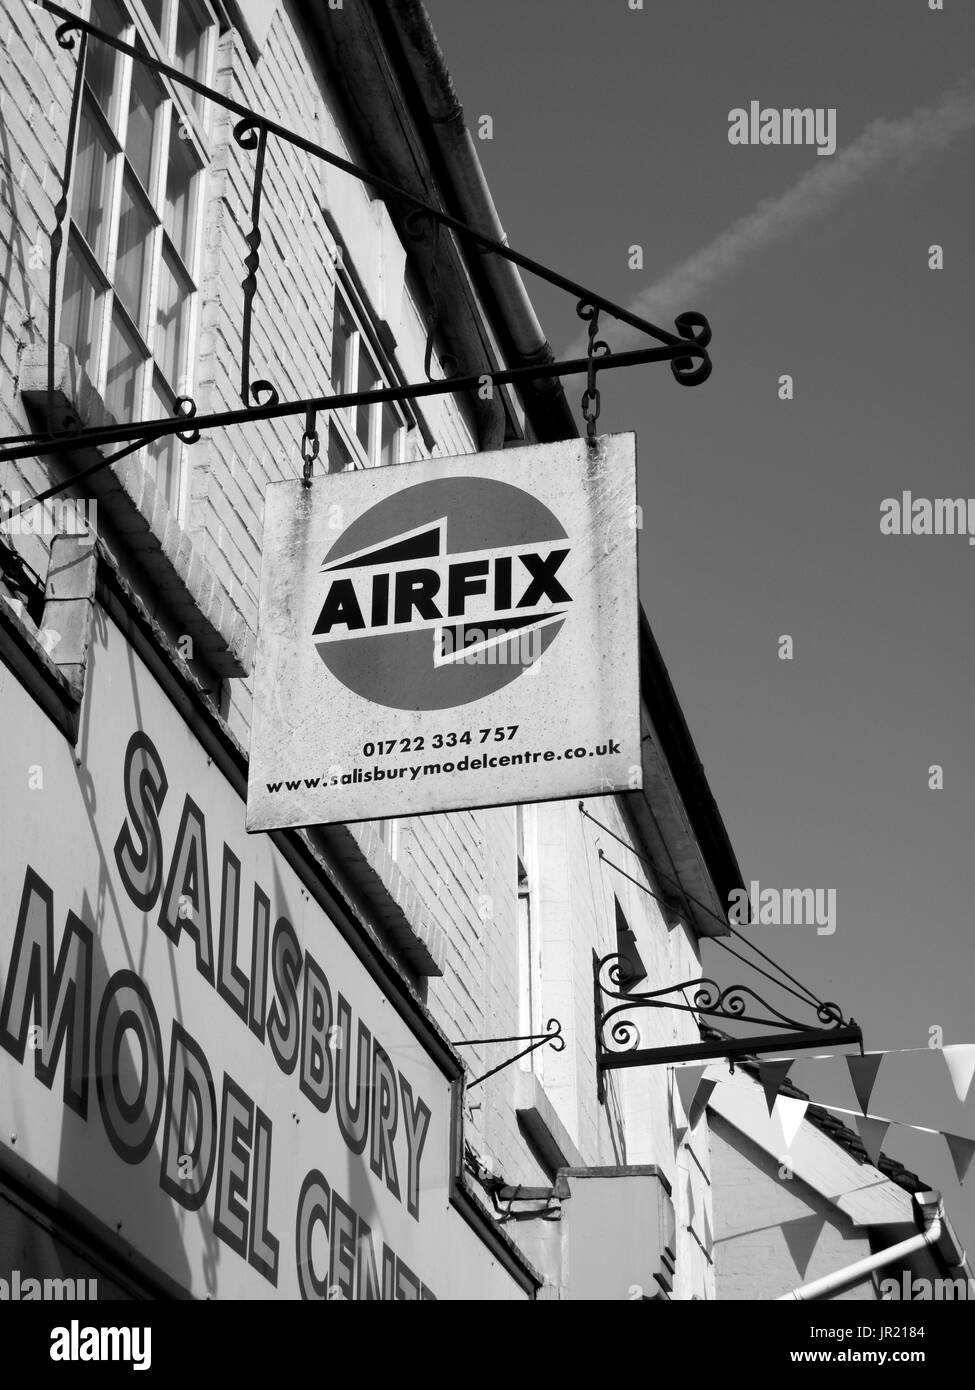 Airfix sign over retail shop, UK manufacturer of injection moulded plastic scale model kits, company founded in 1939 - Stock Image